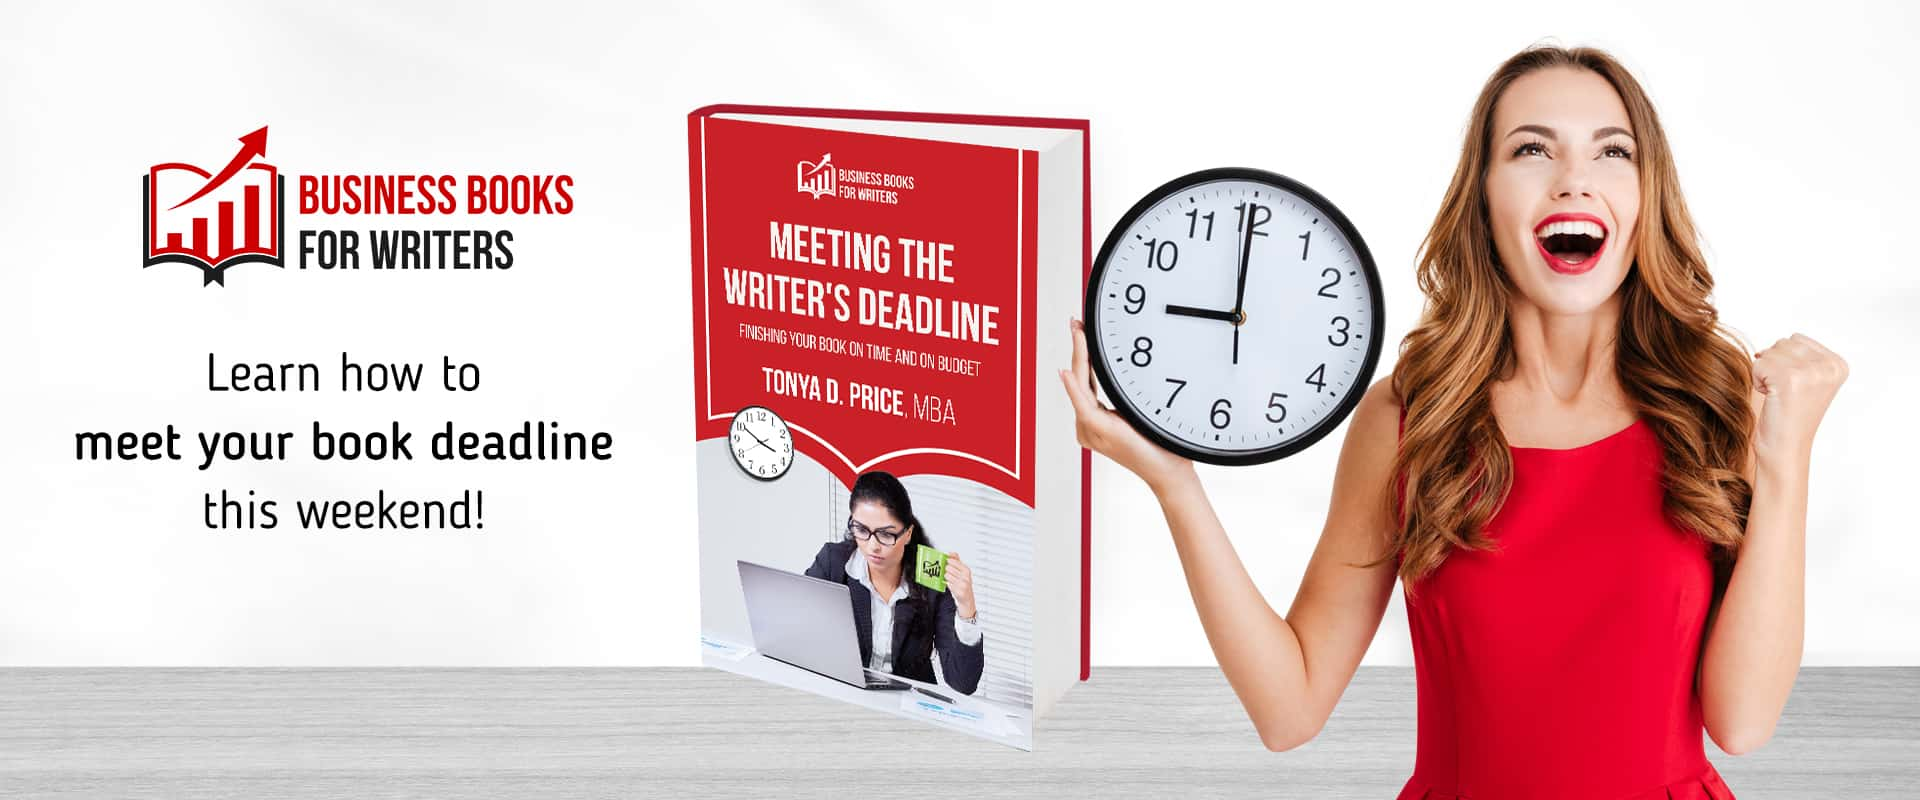 Meeting the Writer's Deadline is a Business Book For Writers